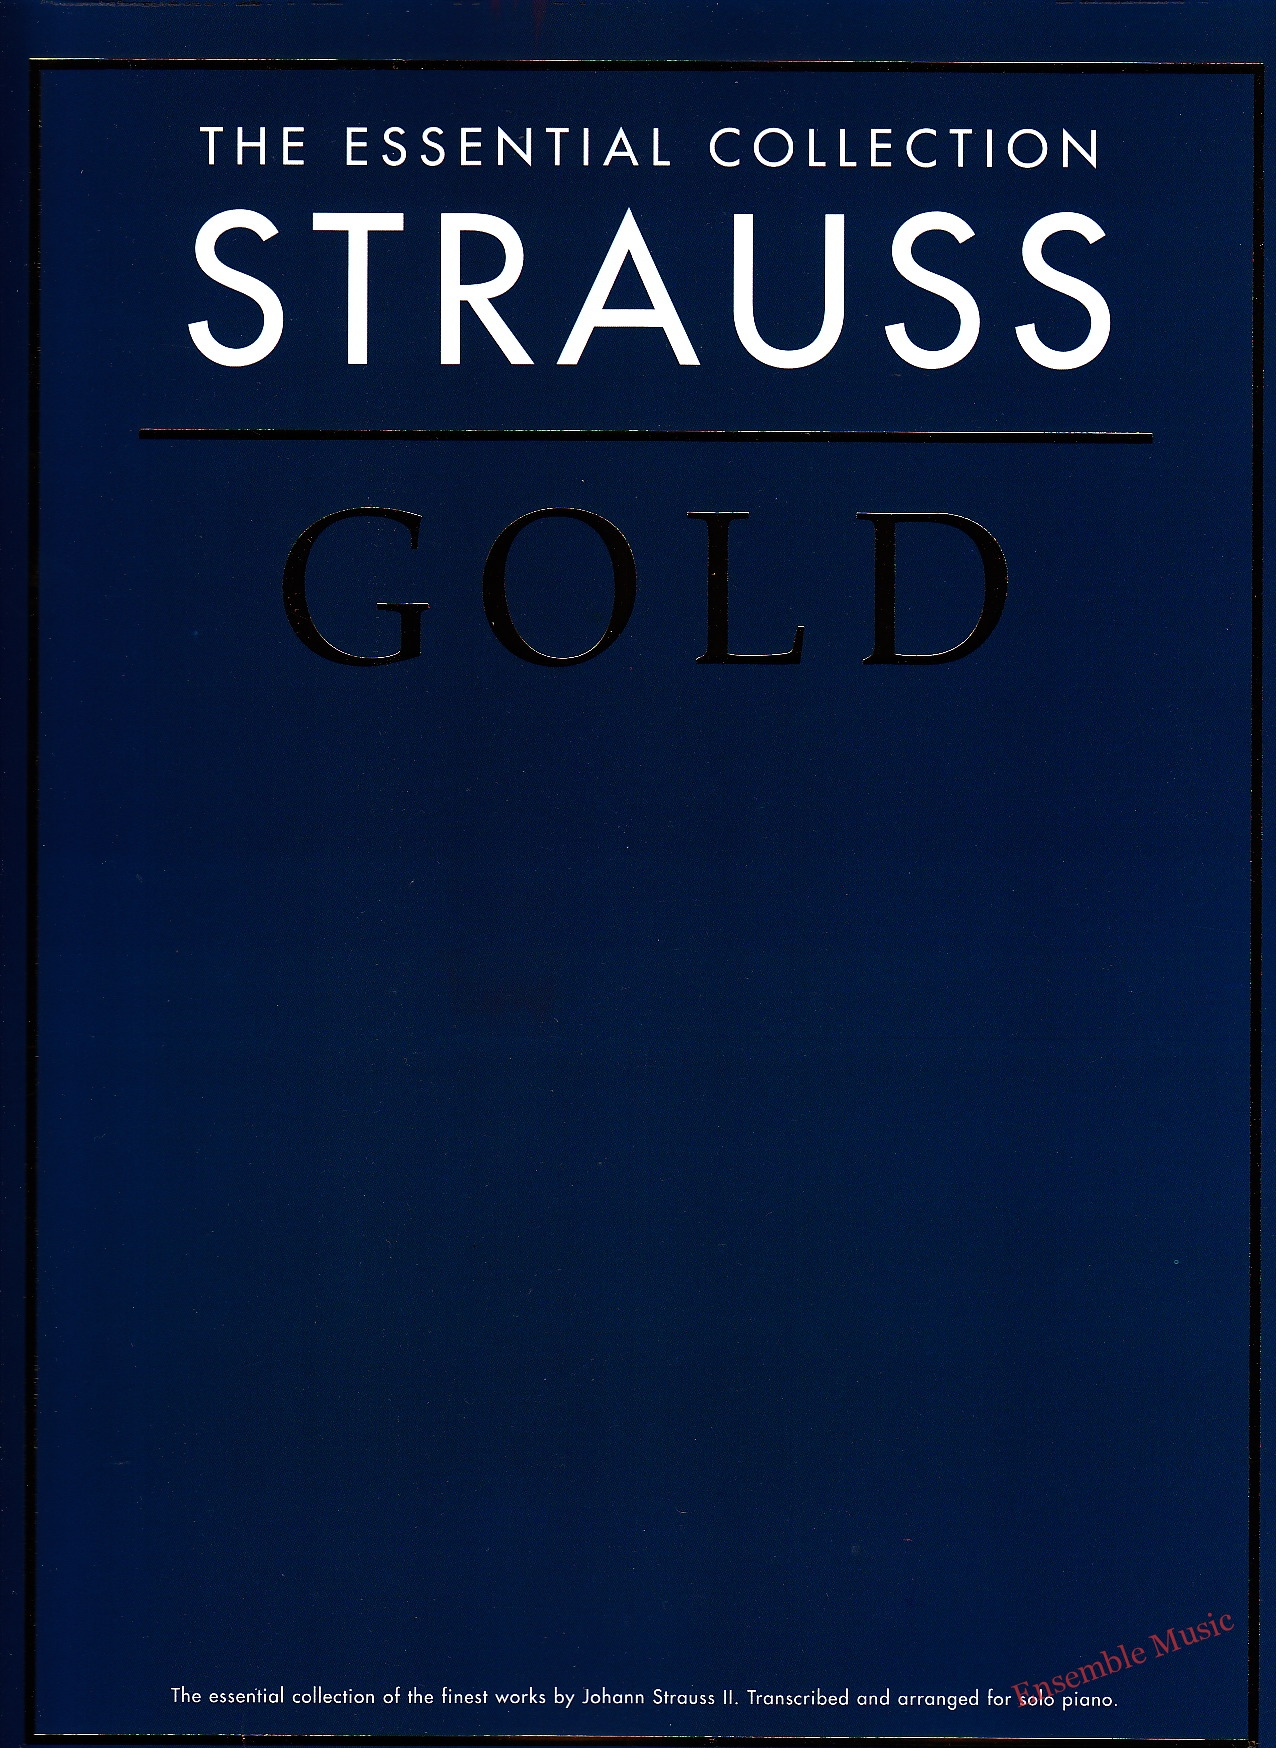 The Essential Collection Strauss Gold